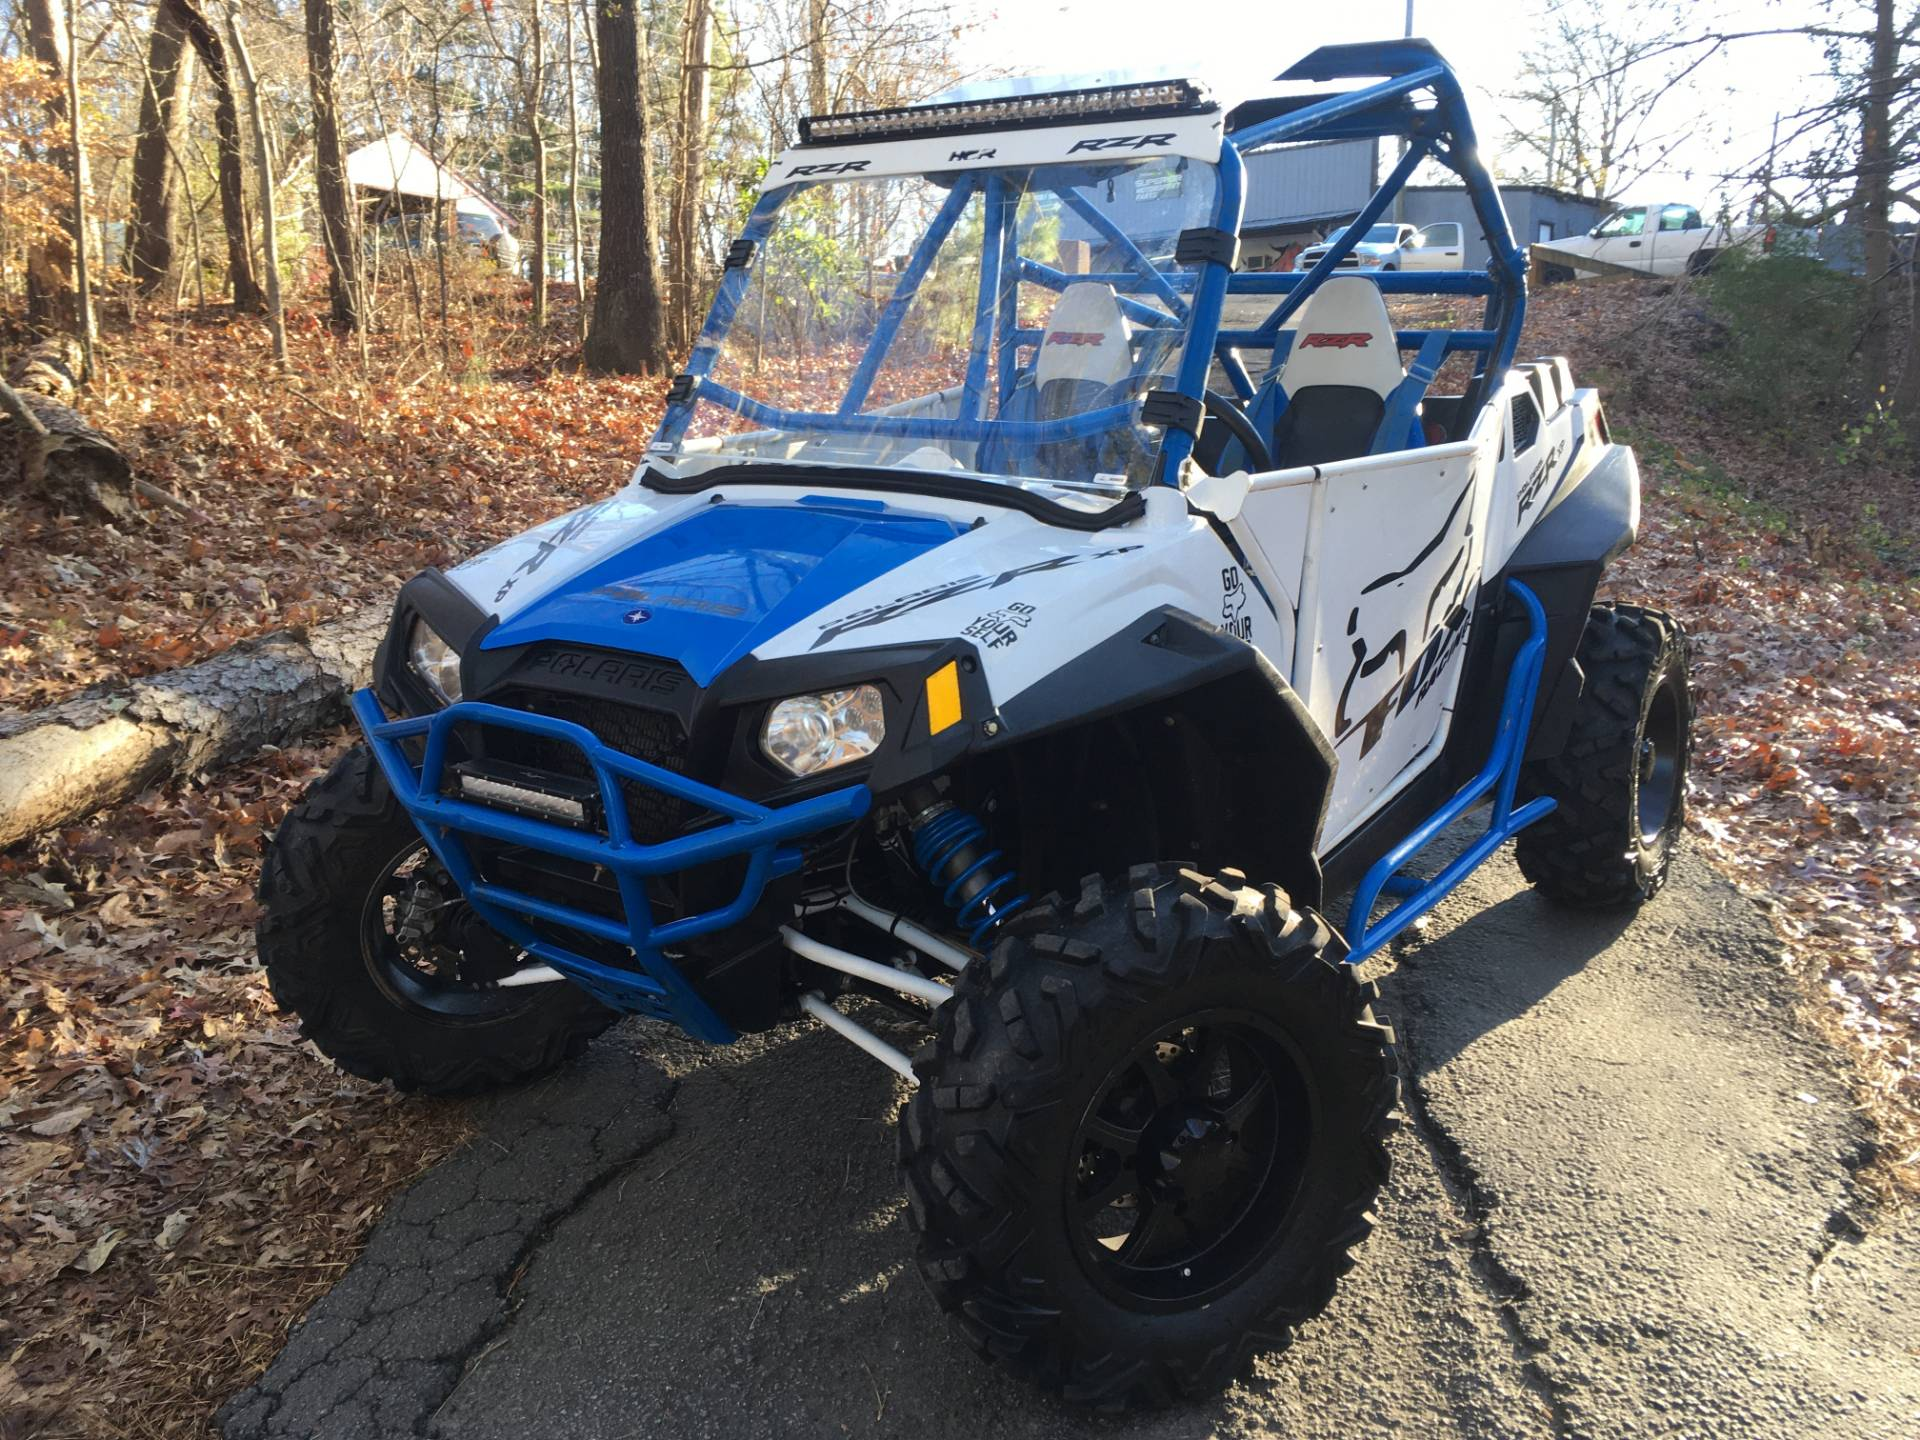 2012 POLARIS RZR 900 XP in Woodstock, Georgia - Photo 1